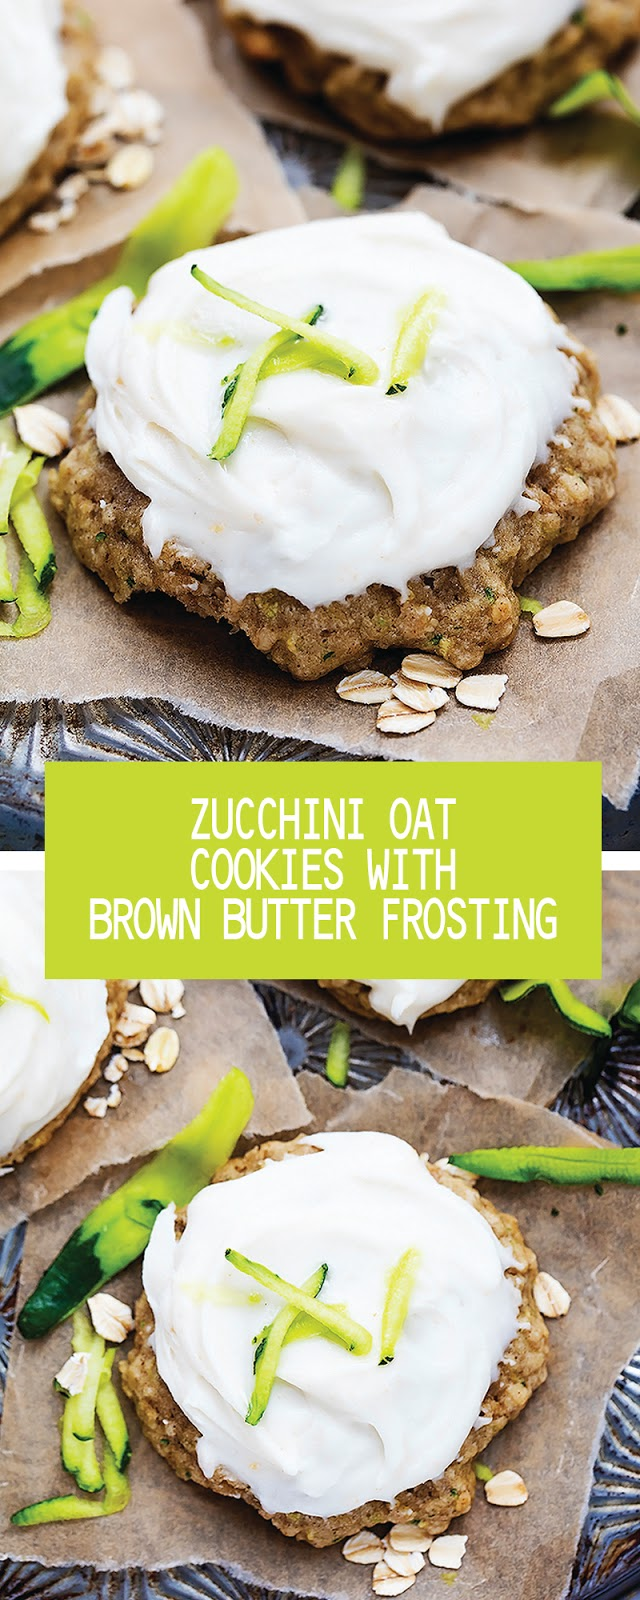 ZUCCHINI OAT COOKIES WITH BROWN BUTTER FROSTING